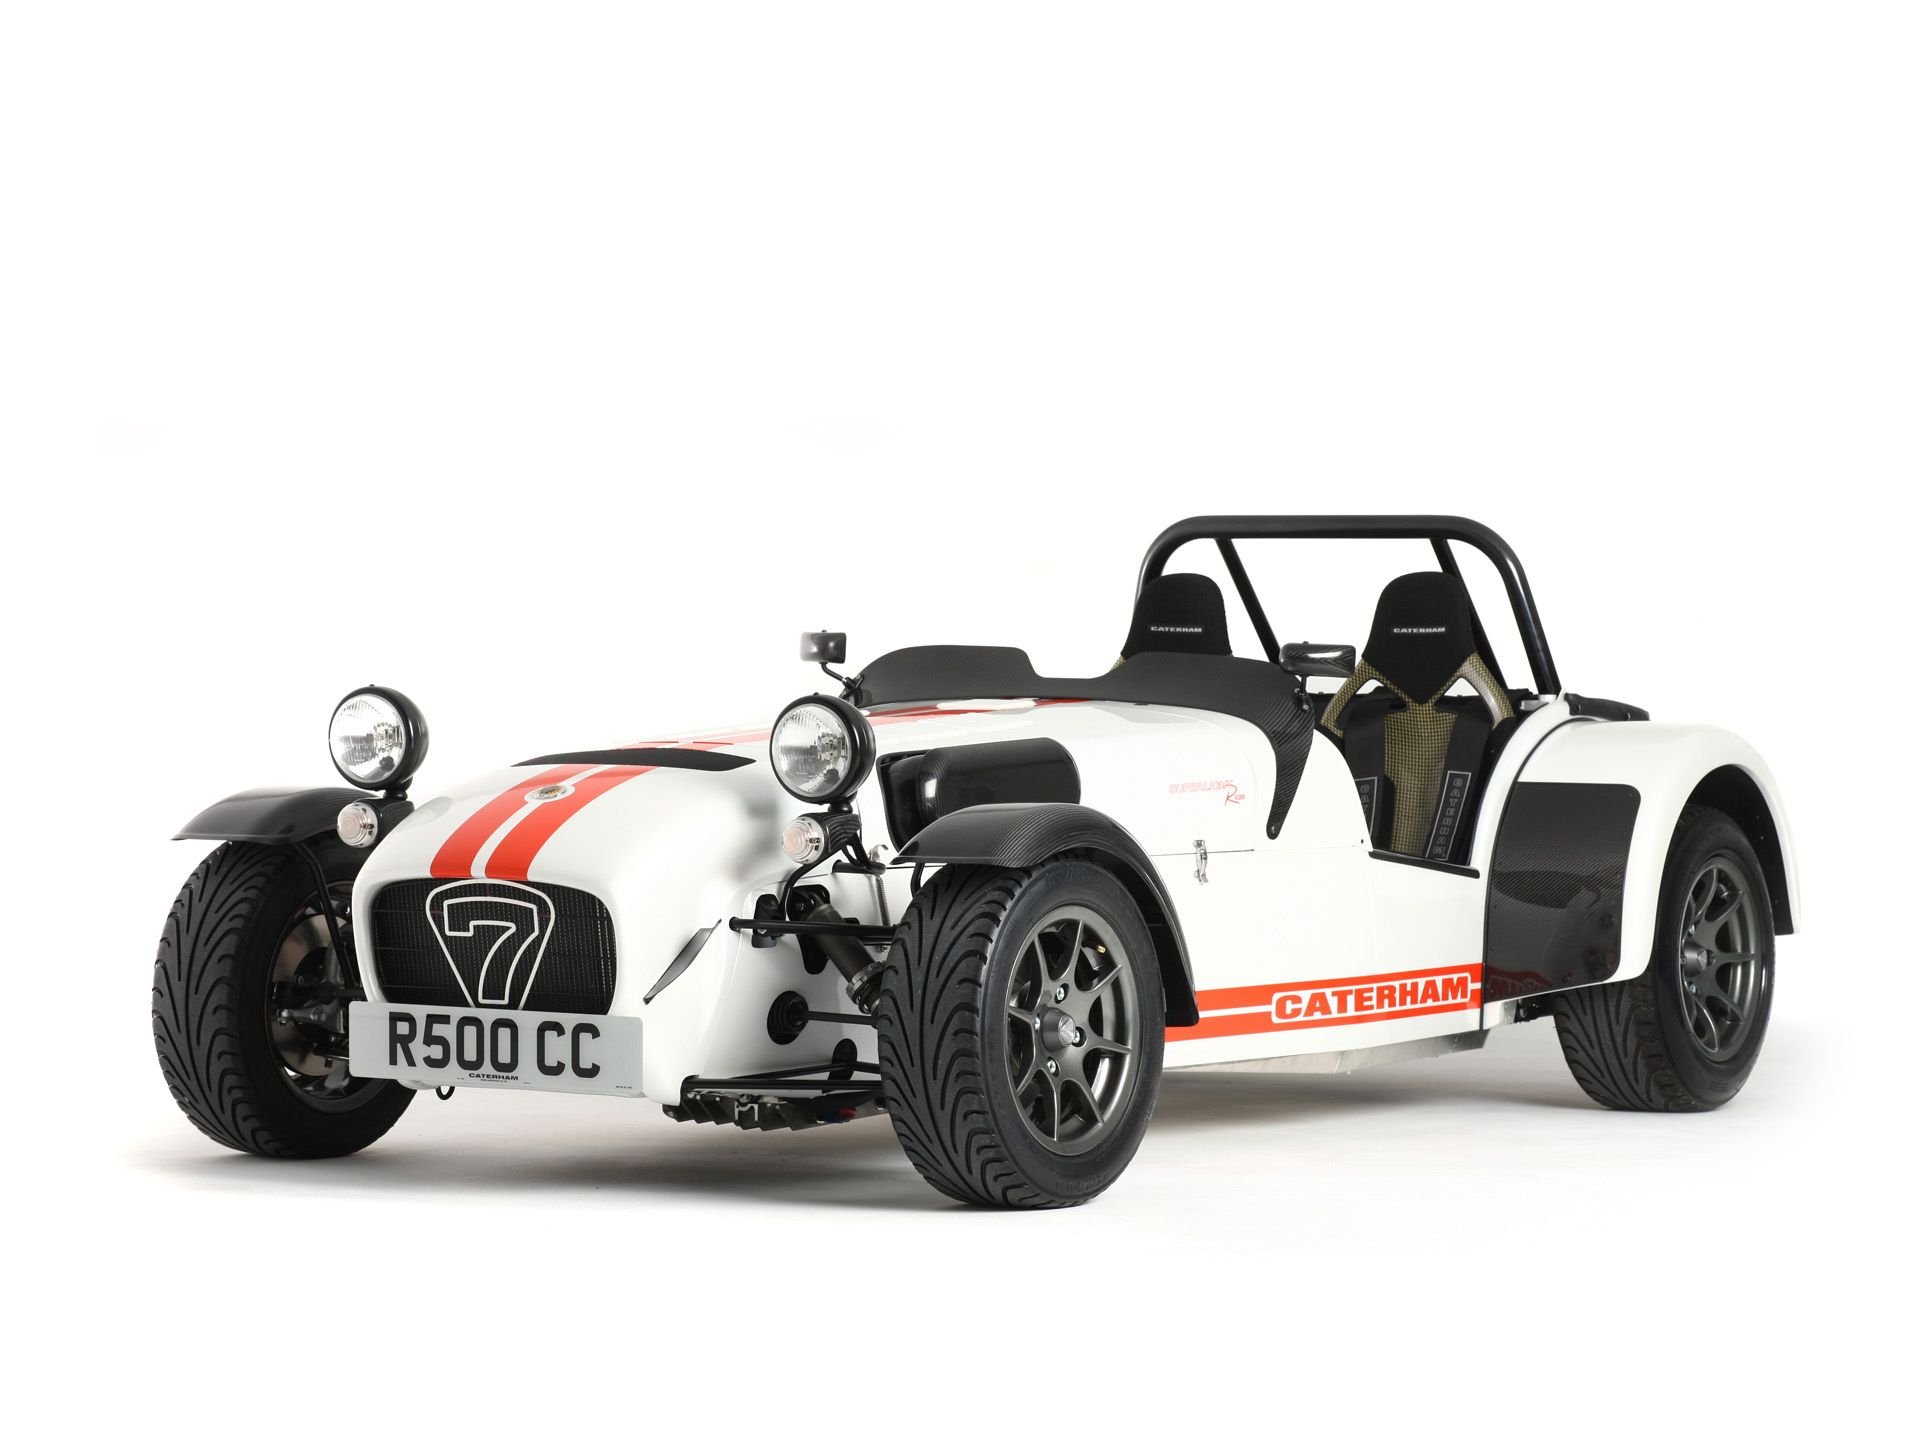 Caterham Seven Always wanted one and to build it myself